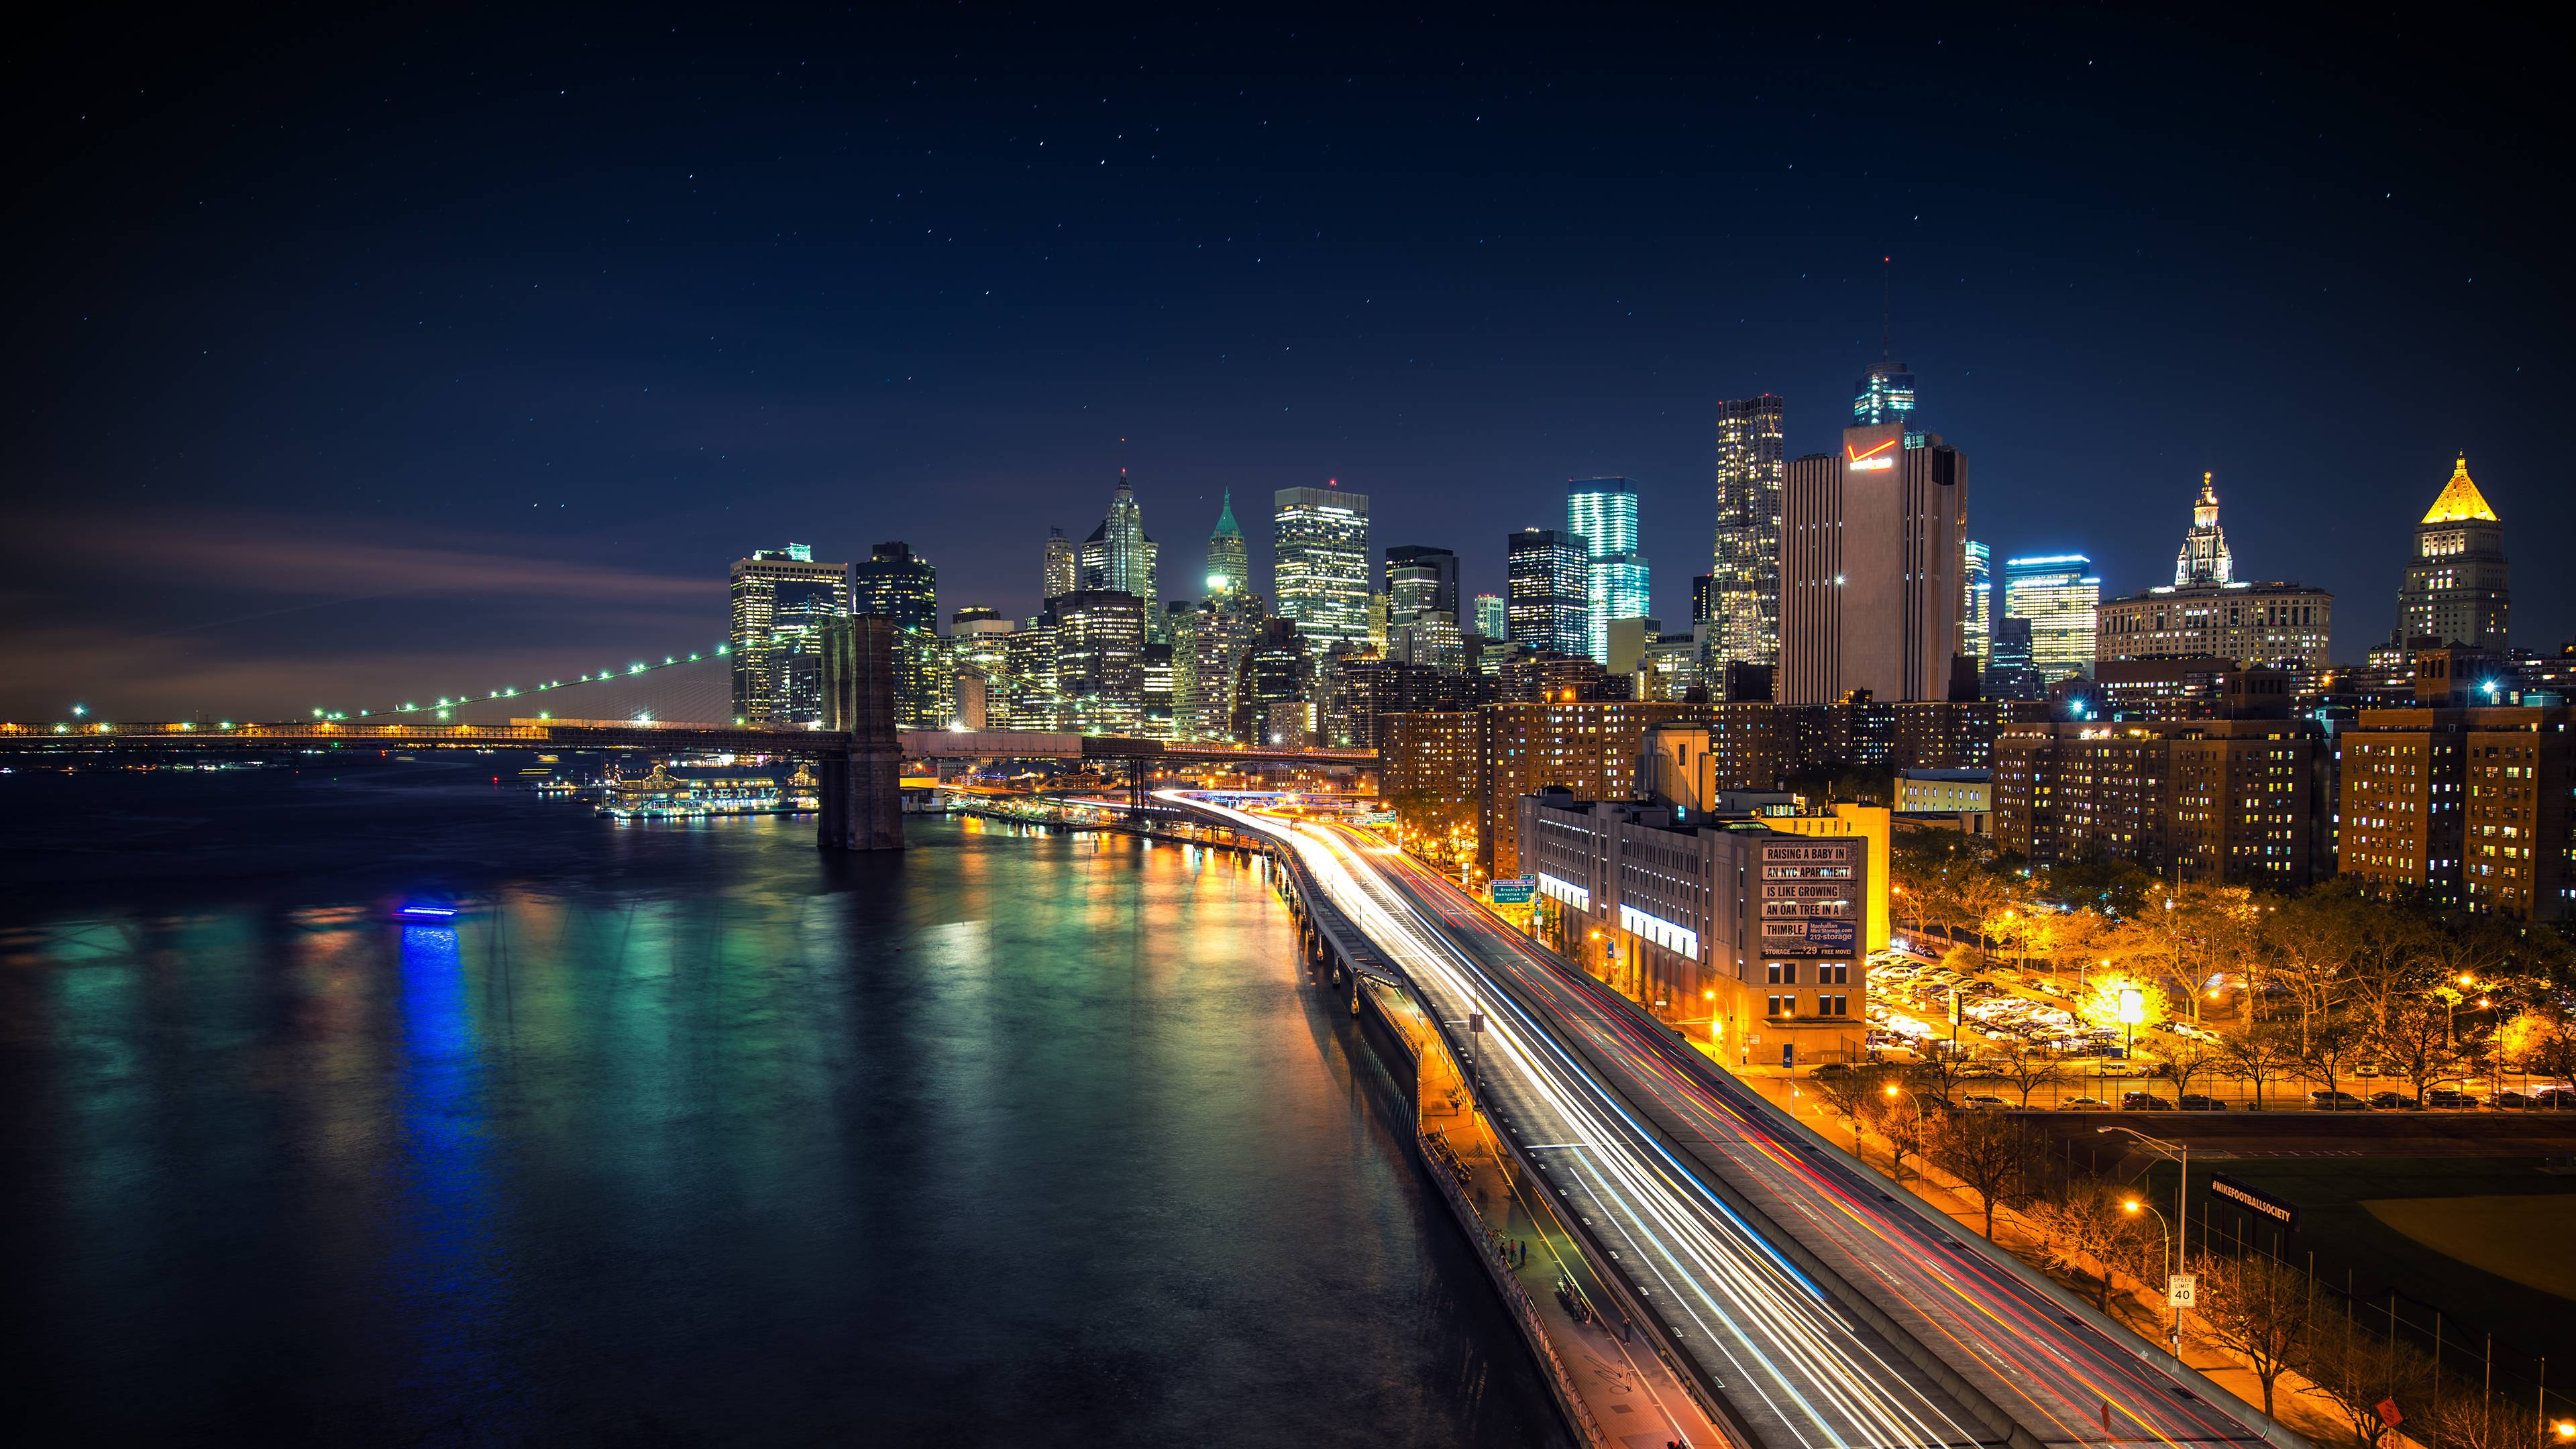 City Lights Image download best HD at